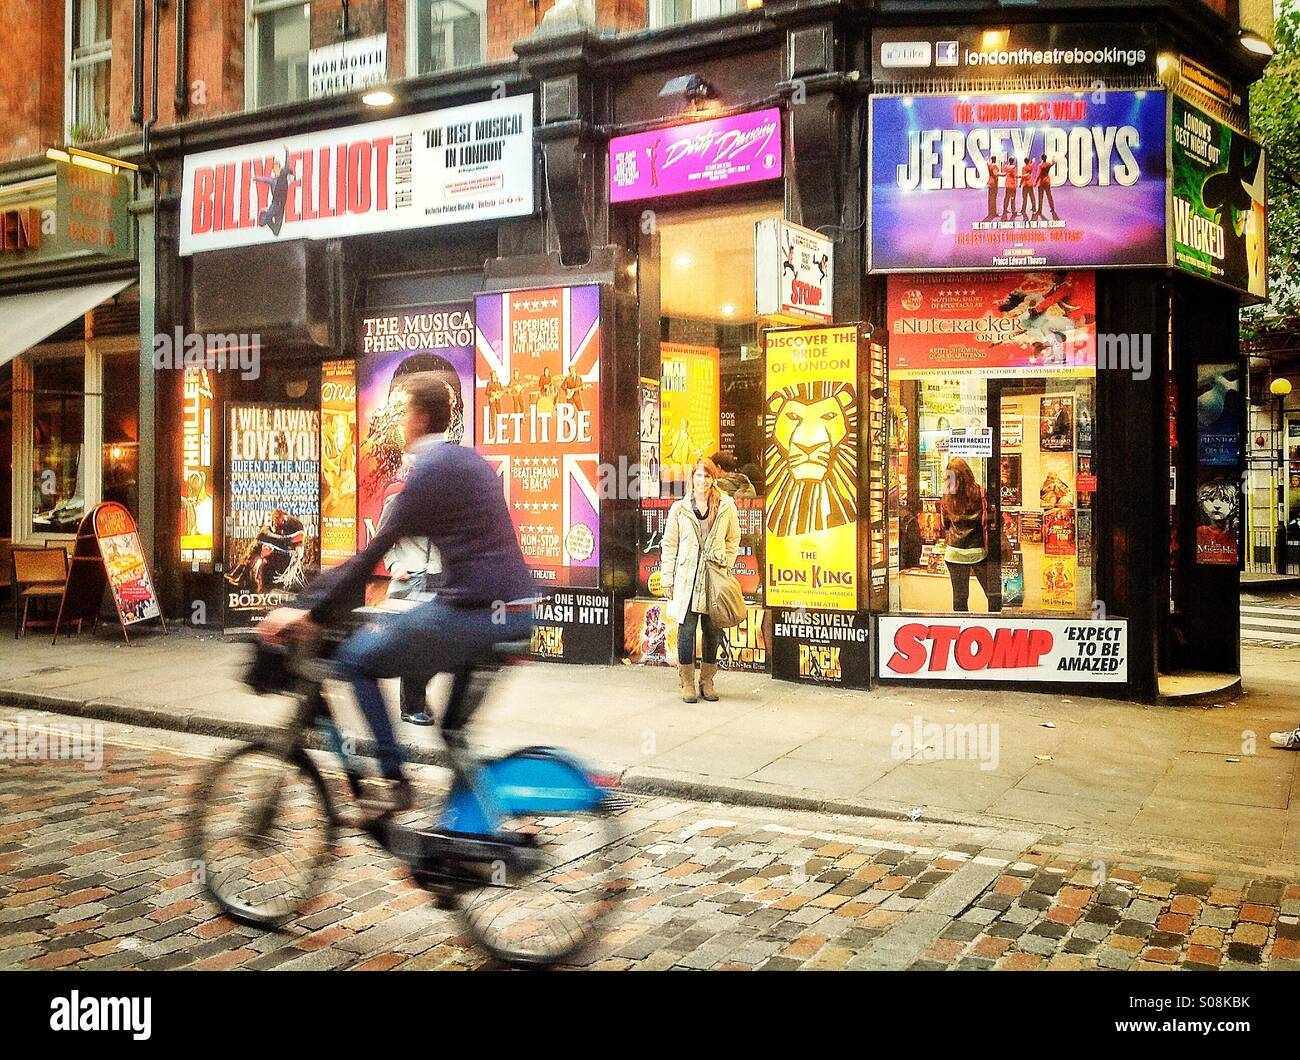 Monmouth Street, Theatreland, London - Stock Image